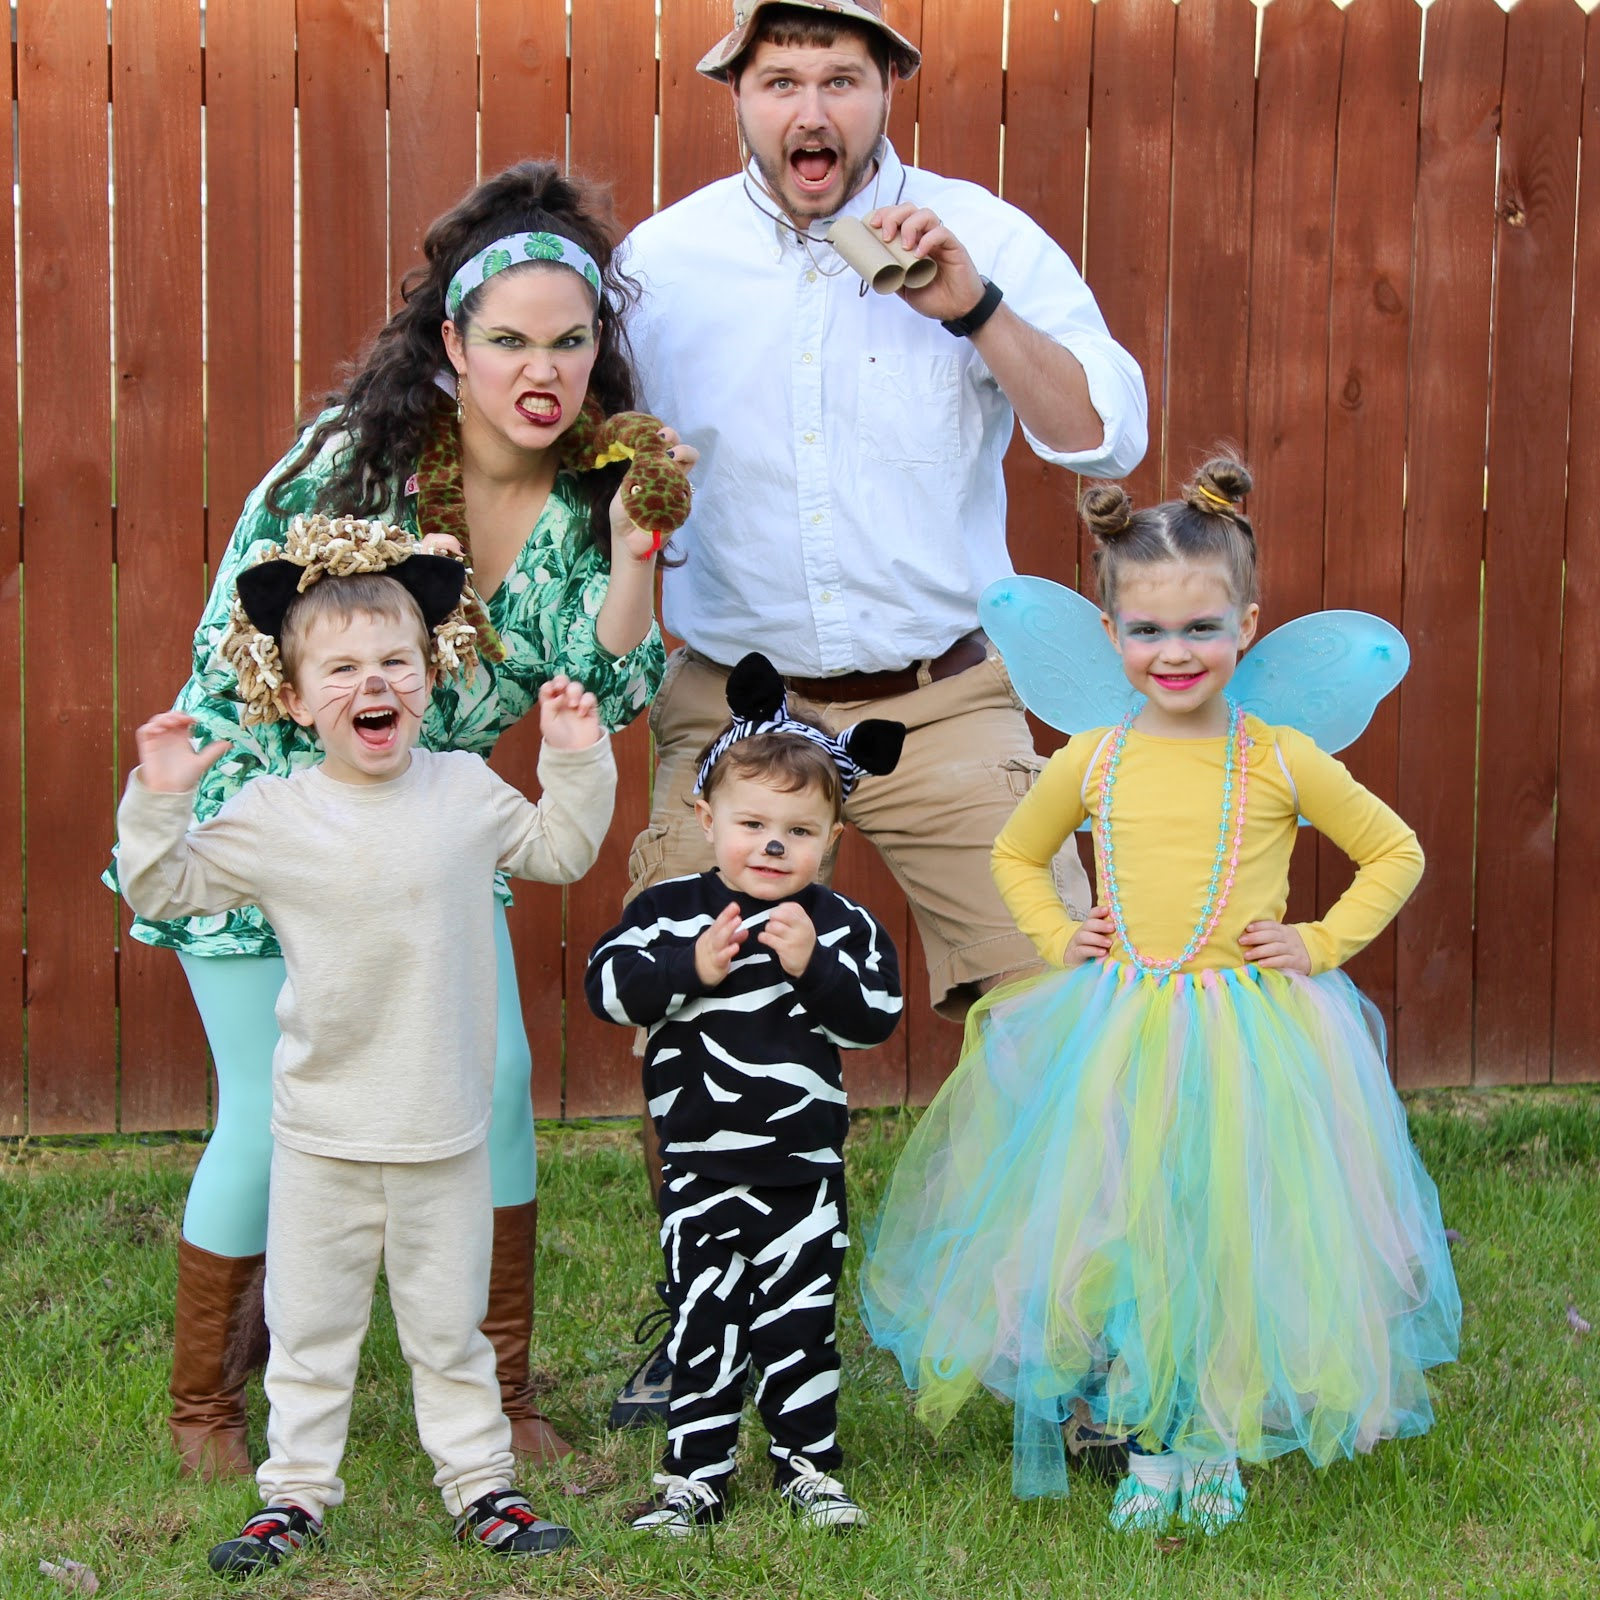 Halloween Costume Ideas For Family Of 3 With Toddler.Safari Themed Family Halloween Costume